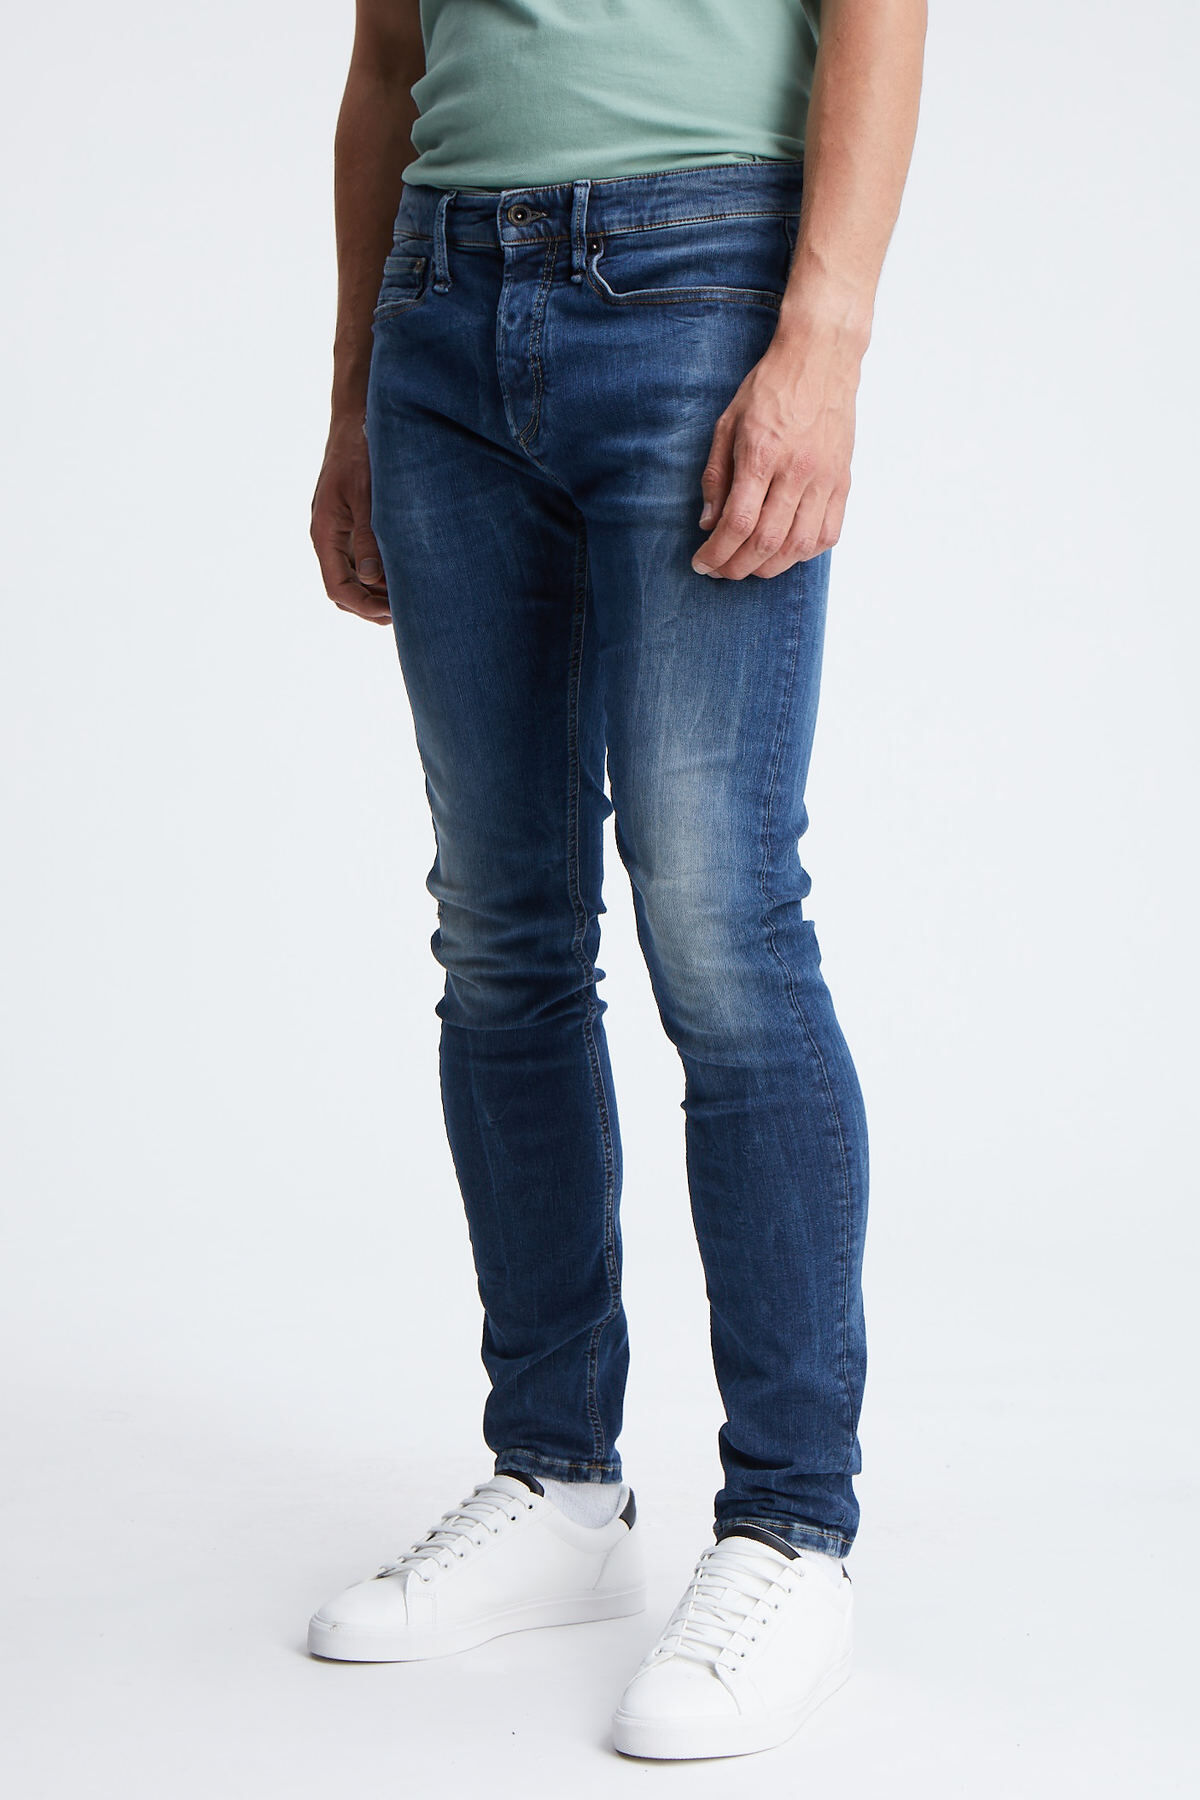 BOLT Classic Indigo Denim - Skinny Fit